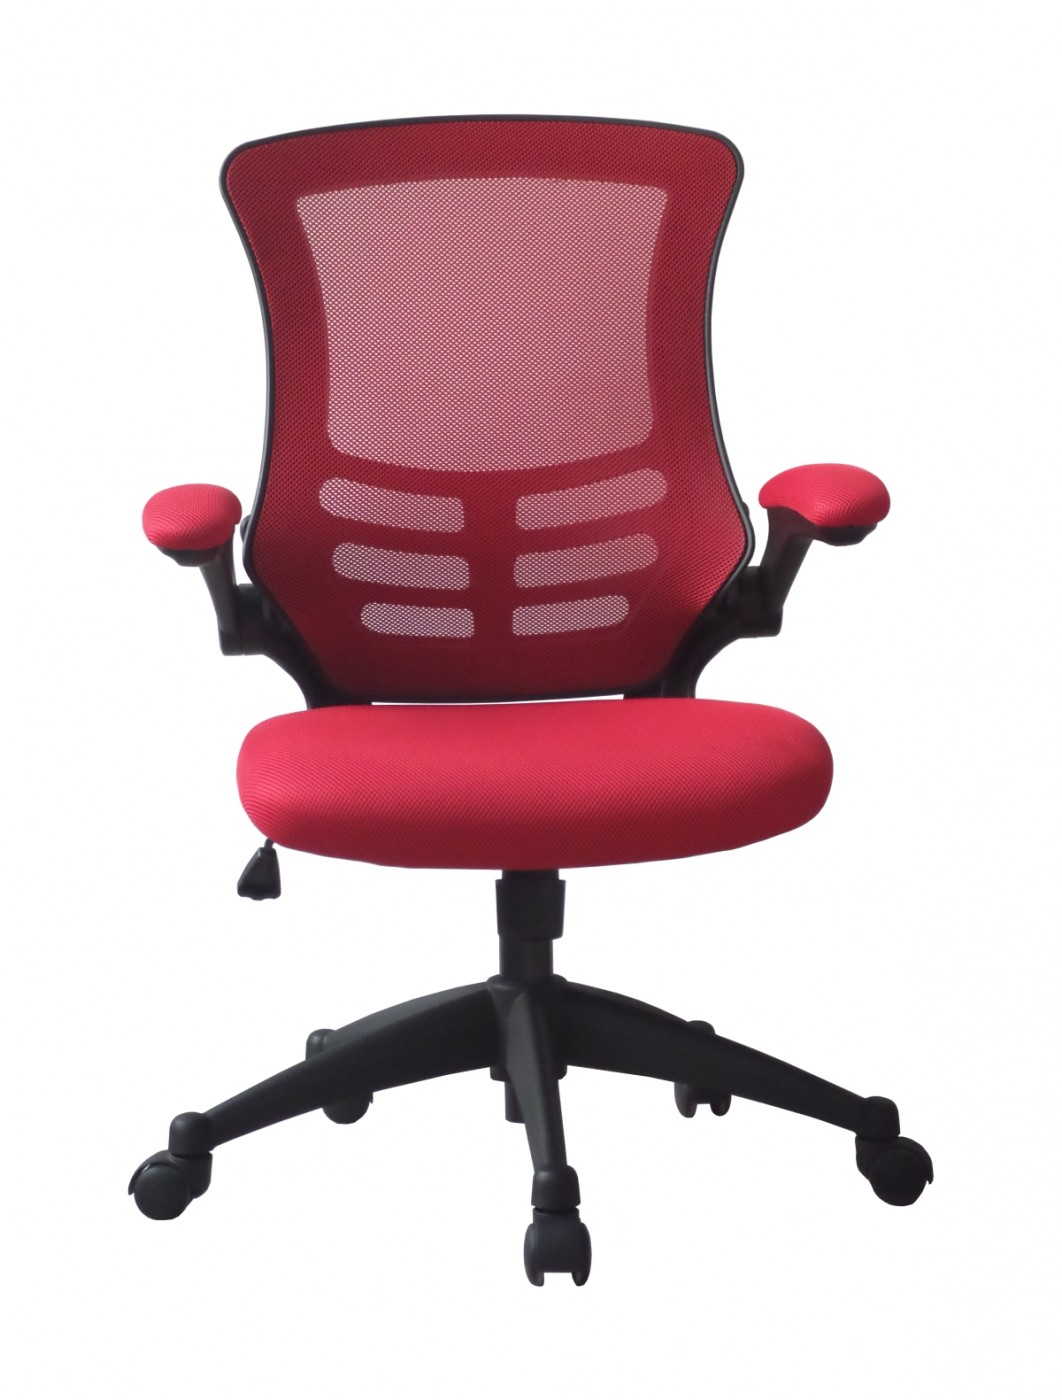 Eliza Tinsley Luna mesh back chair BCM/L1302 | 121 Office Furniture for Office Chair Front View  300lyp